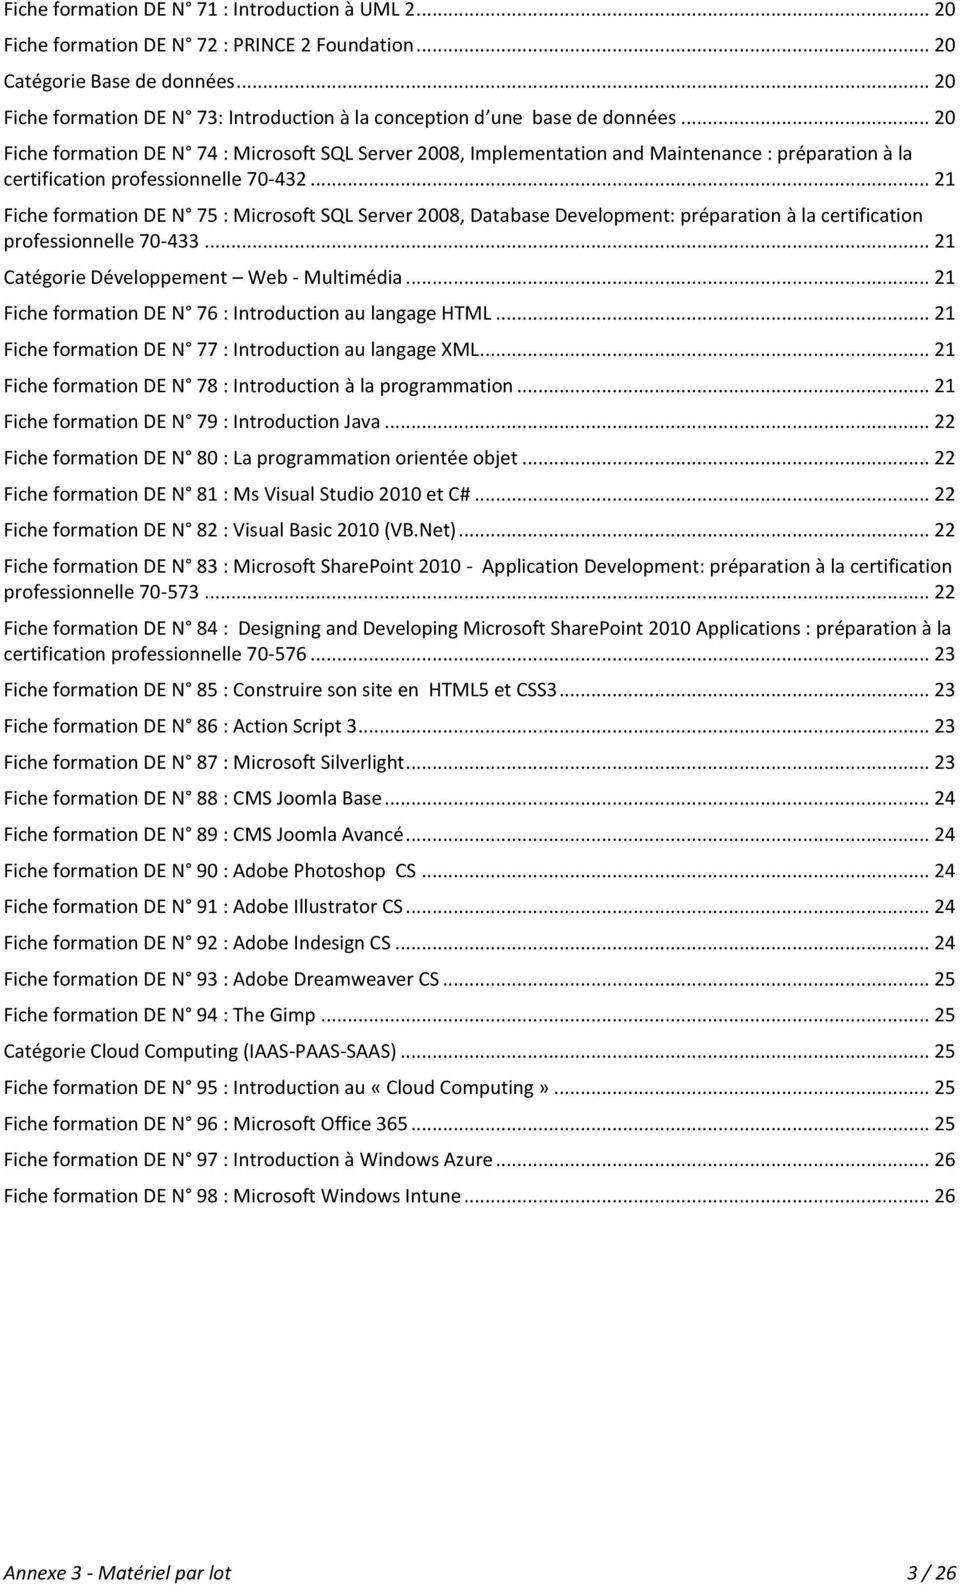 .. 20 Fiche formation DE N 74 : Microsoft SQL Server 2008, Implementation and Maintenance : préparation à la certification professionnelle 70-432.